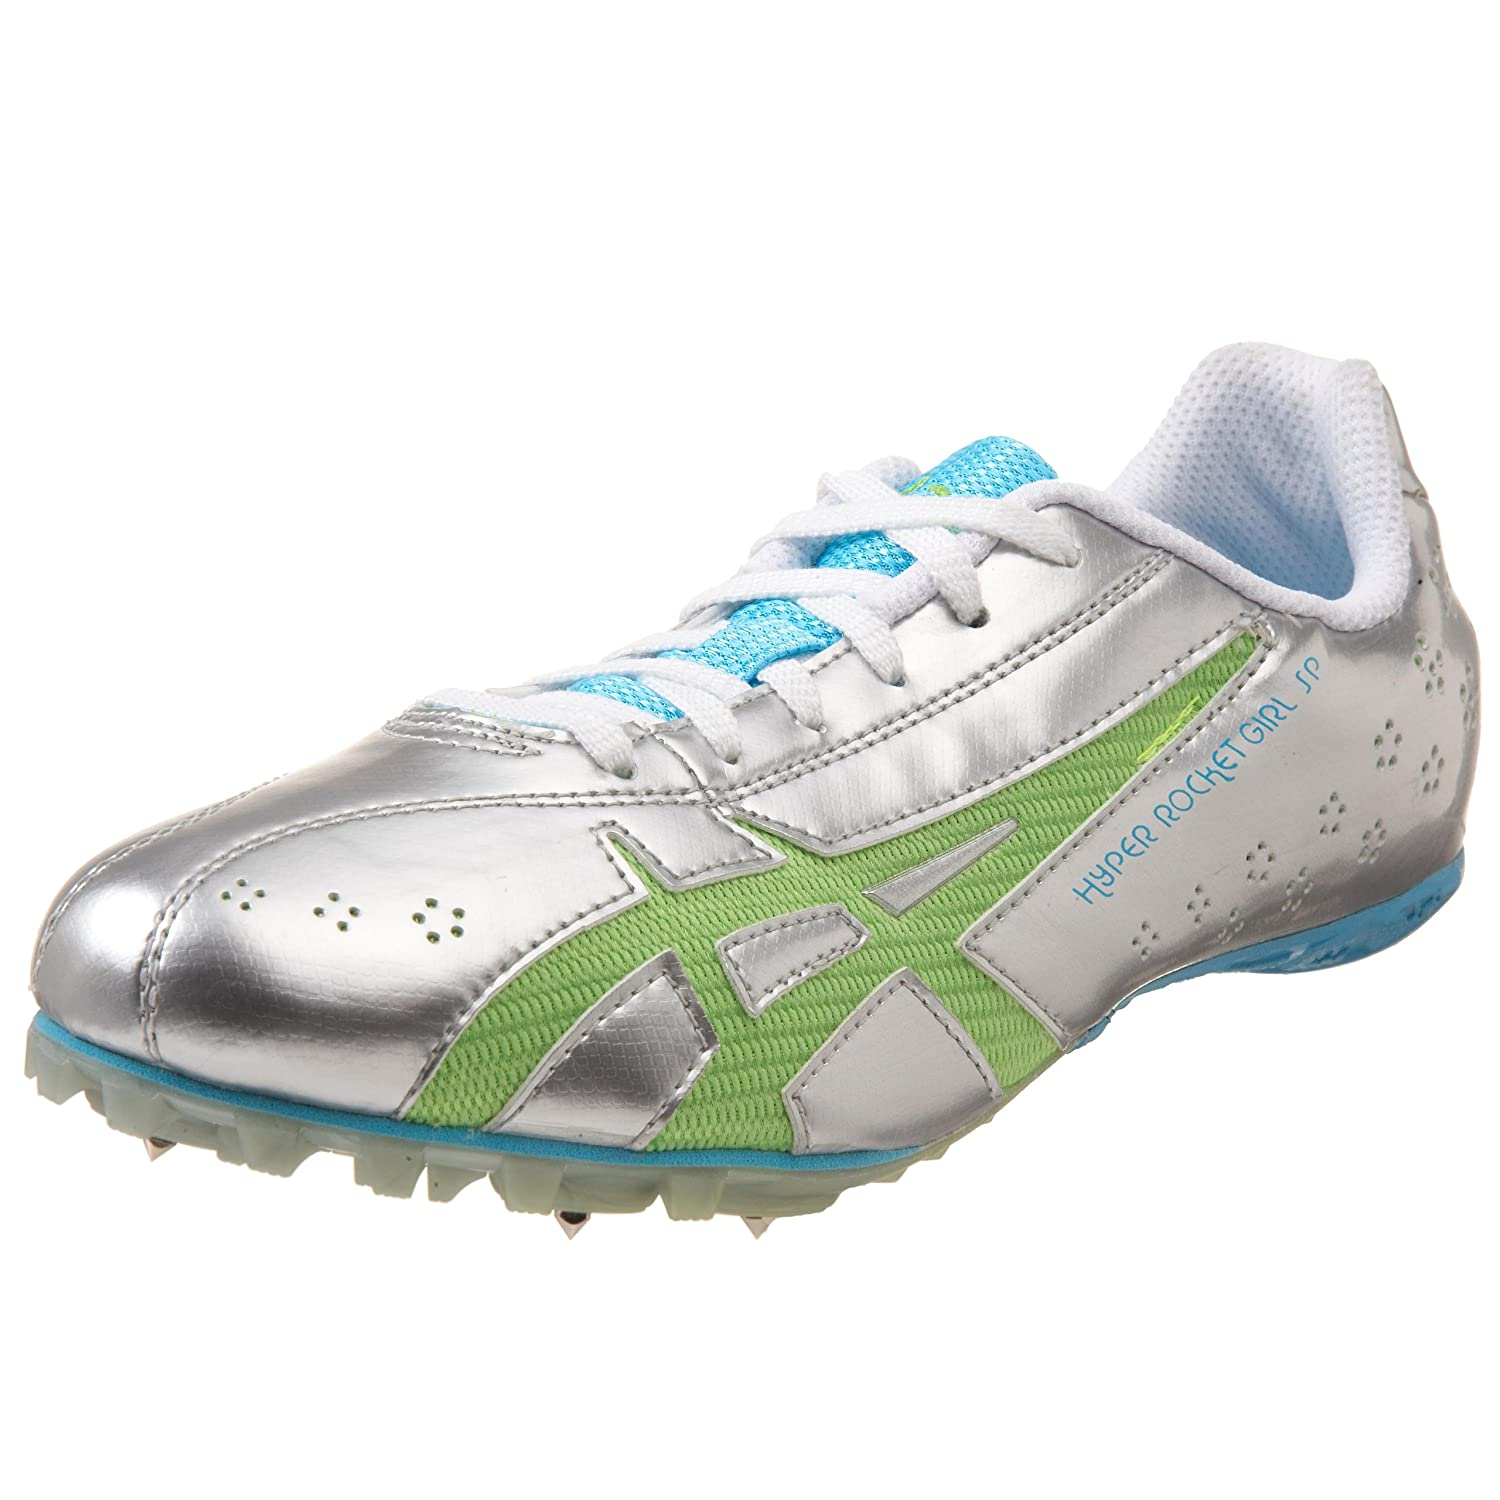 ASICS Women's Hyper-Rocketgirl SP 3 Track & Field Shoe